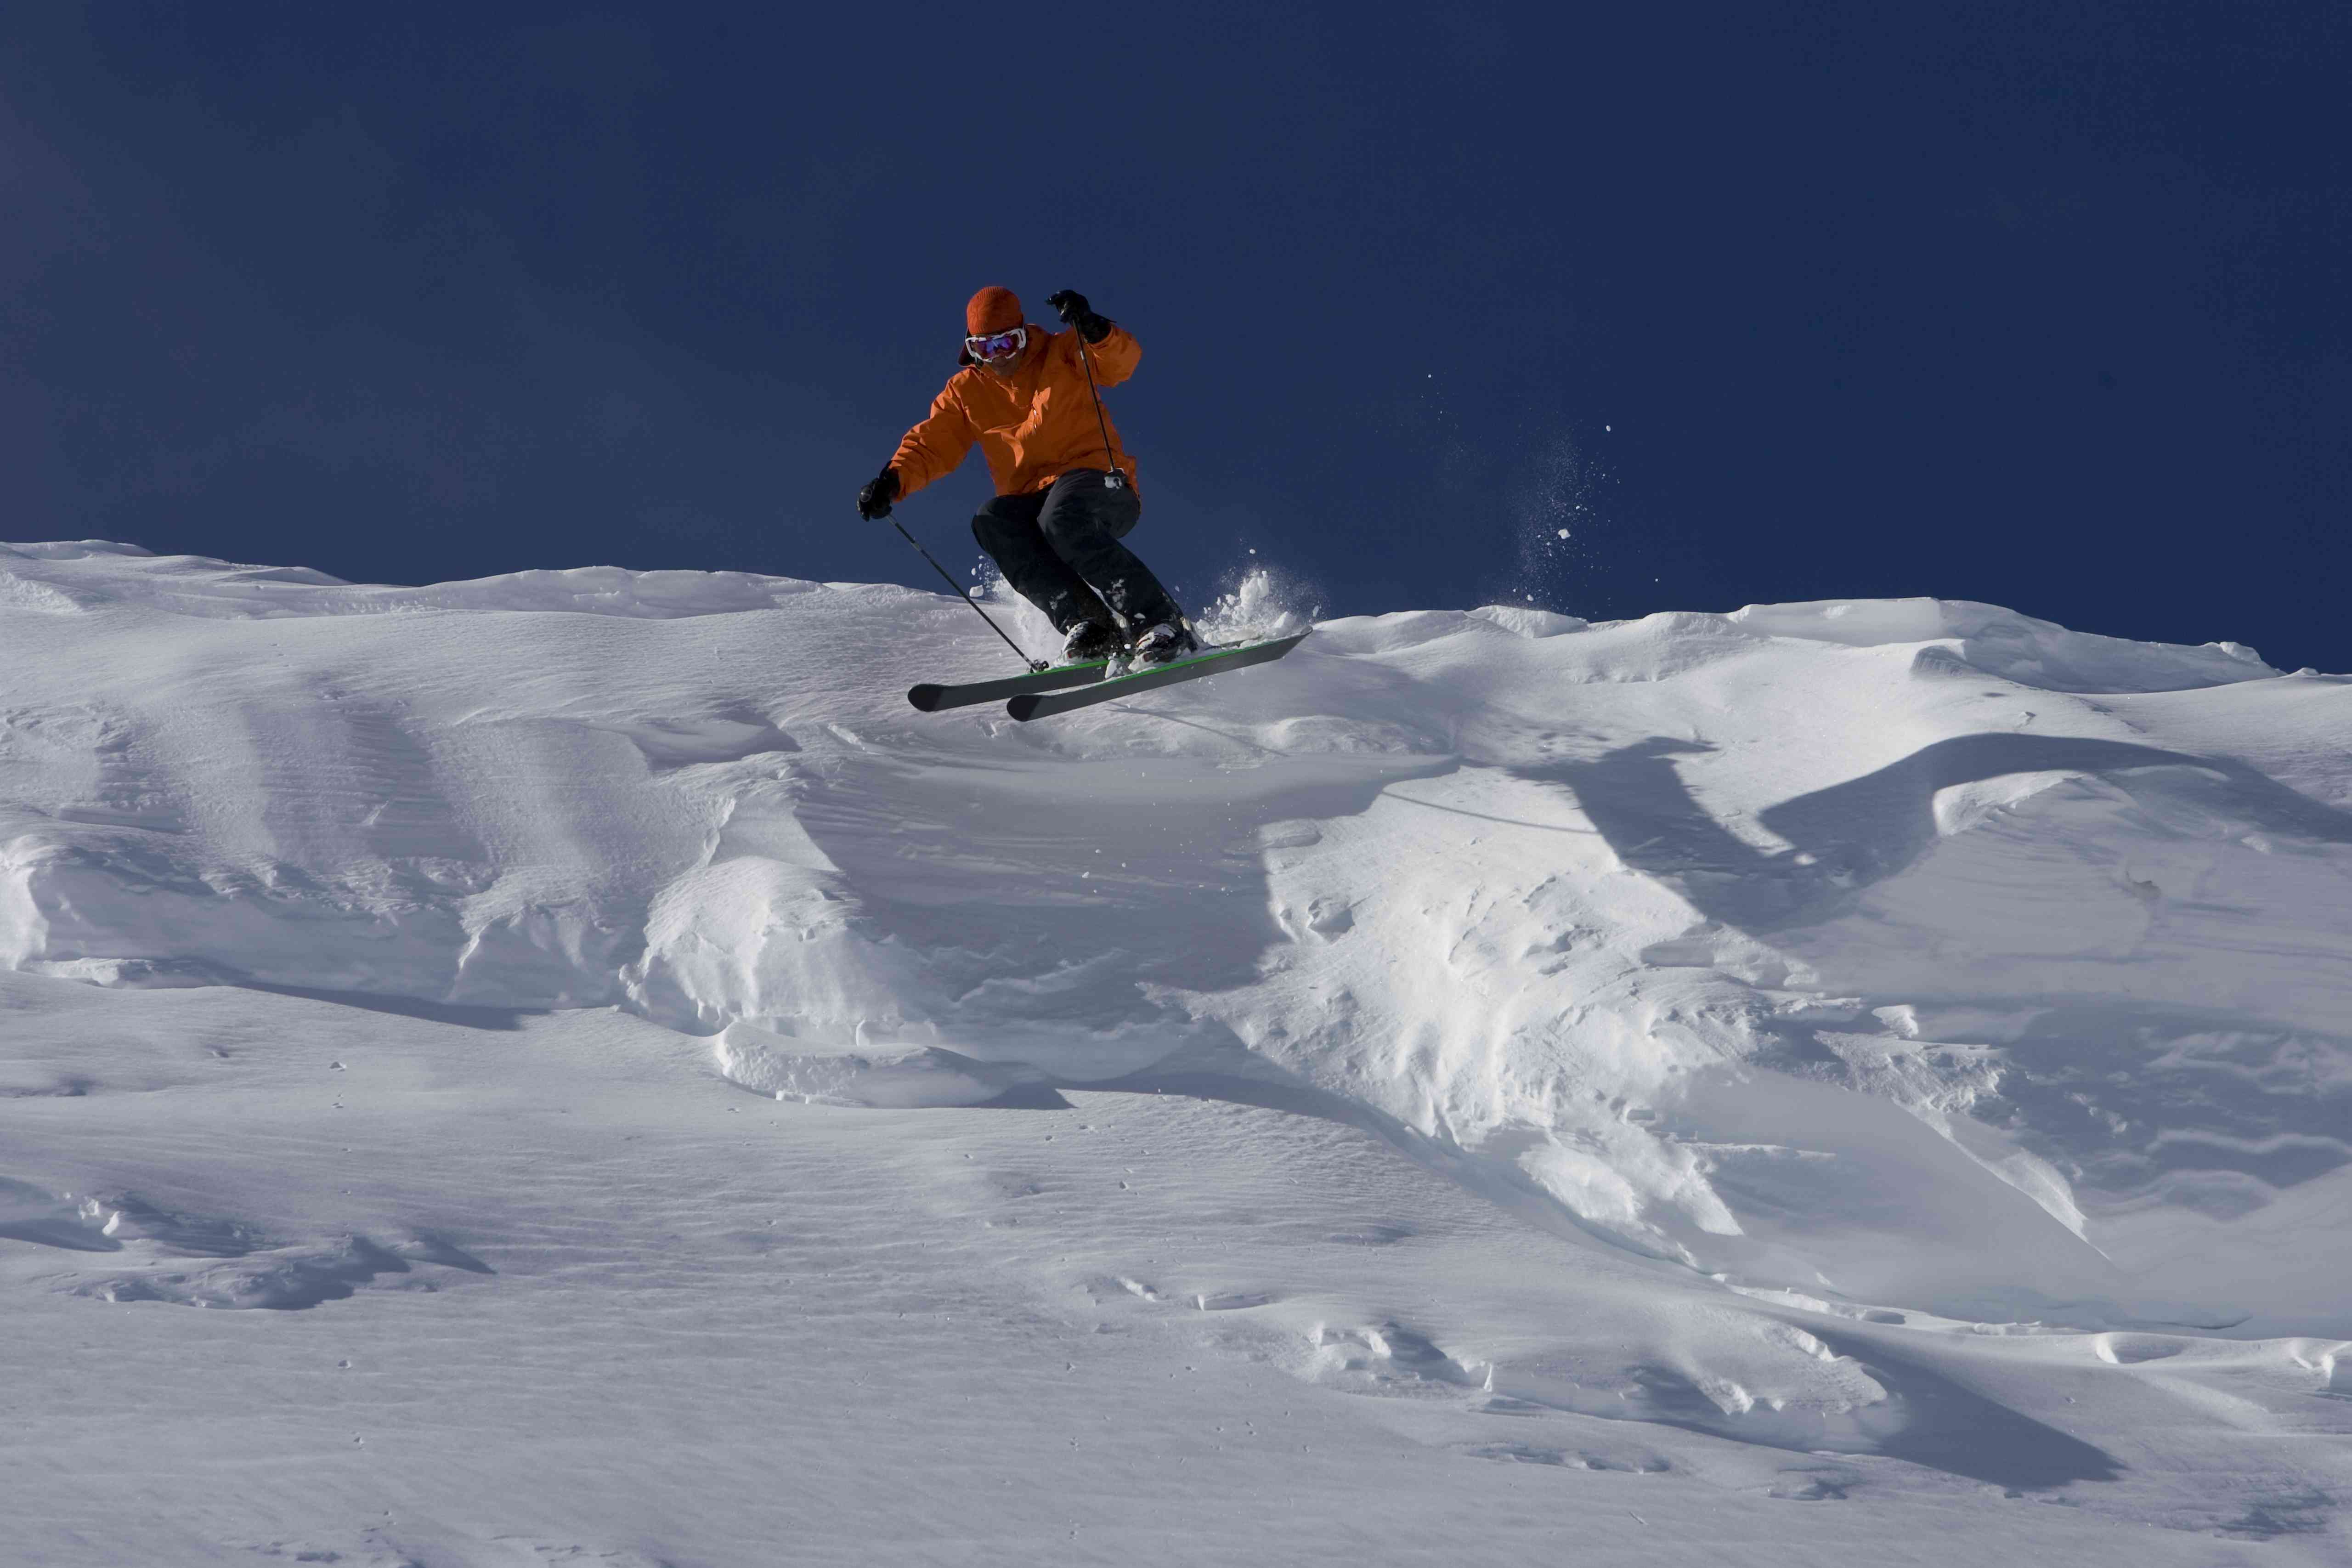 Kirkwood Mountain Resort, California: A man skis in fresh, deep powder on a sunny day at a mountain resort in California.